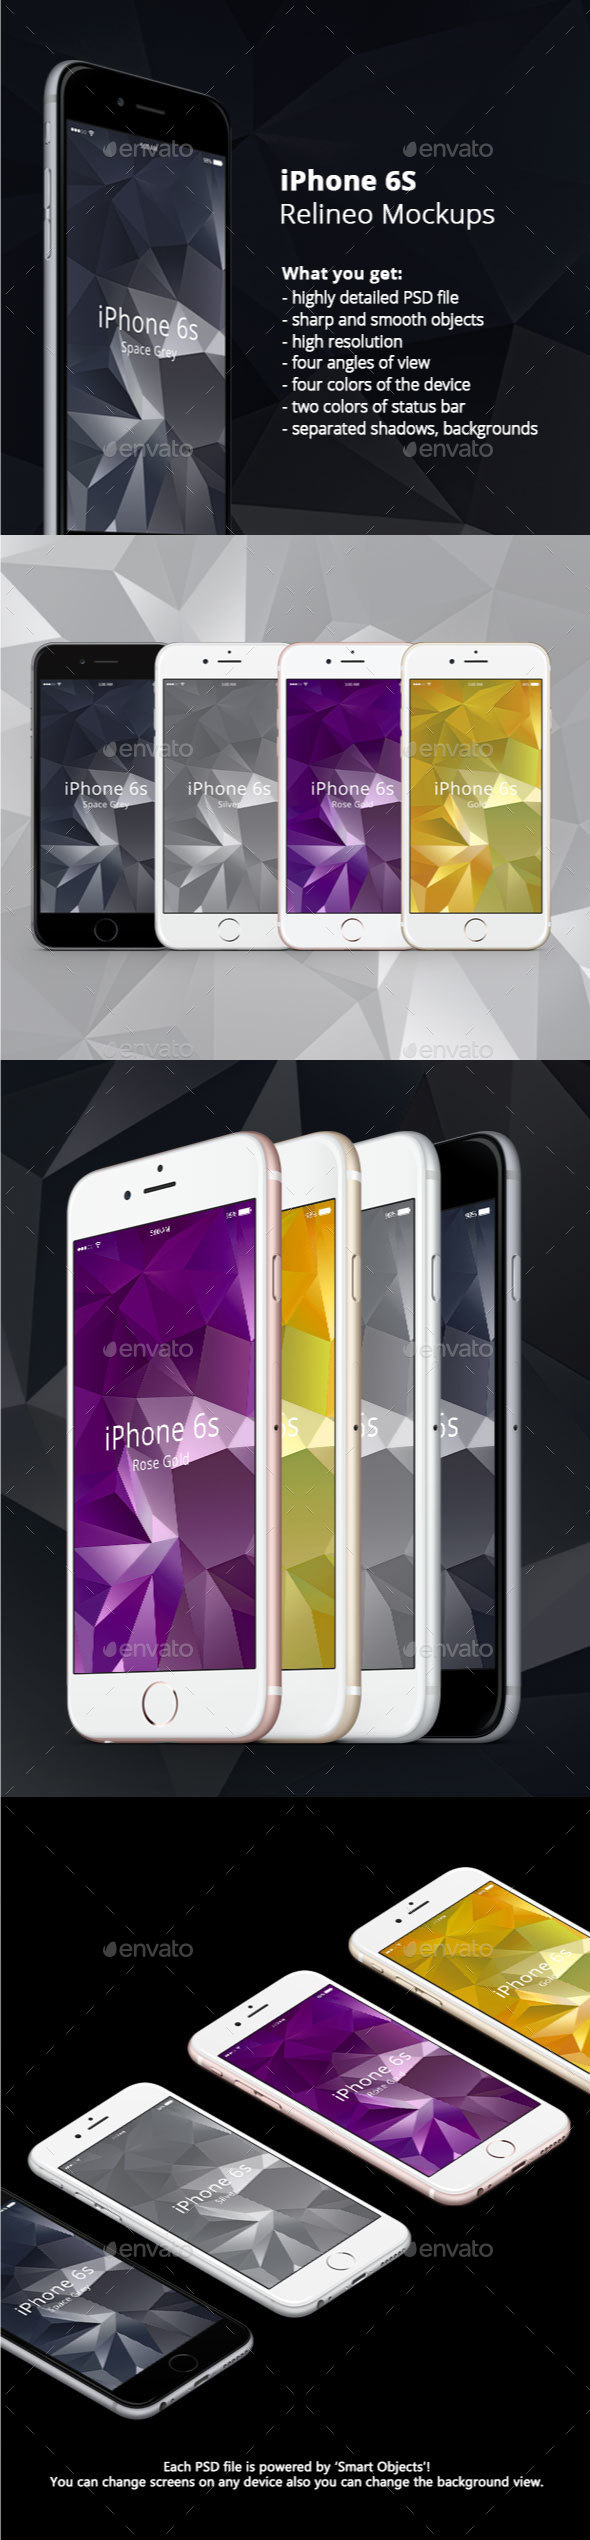 Apple iPhone Display Mock-up pack Vol.1 - Mobile Displays